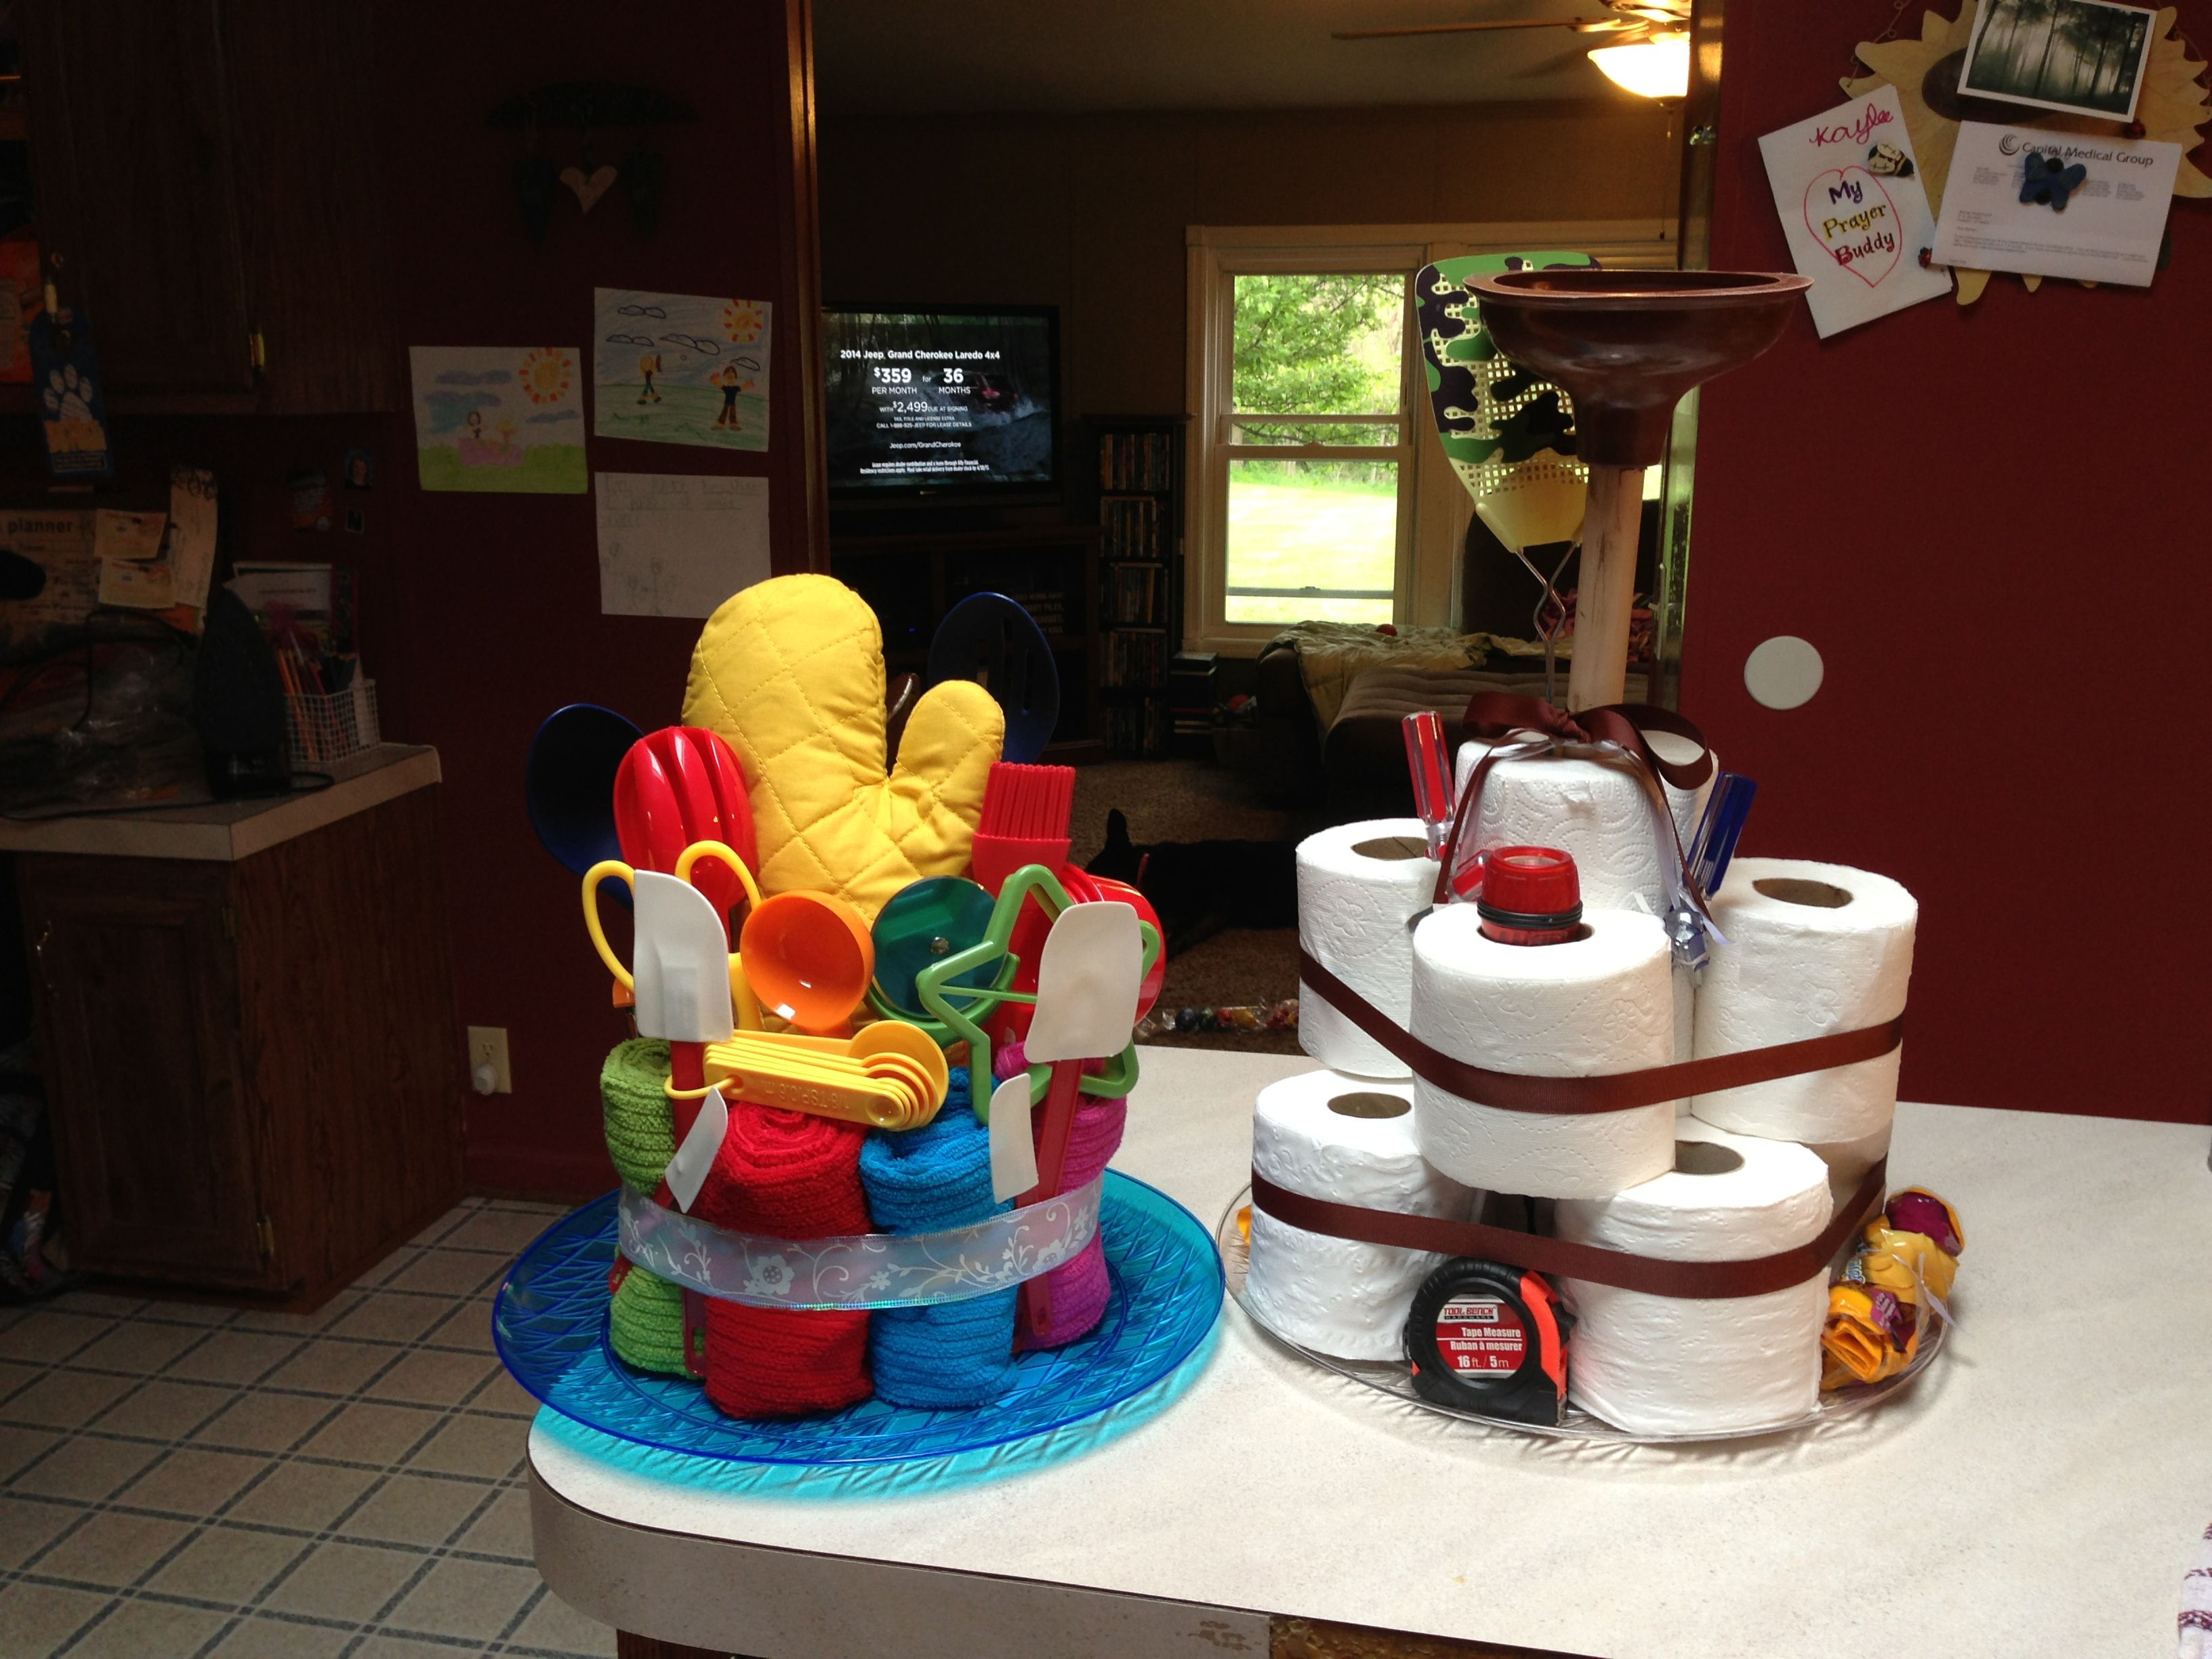 His & Hers wedding shower cakes